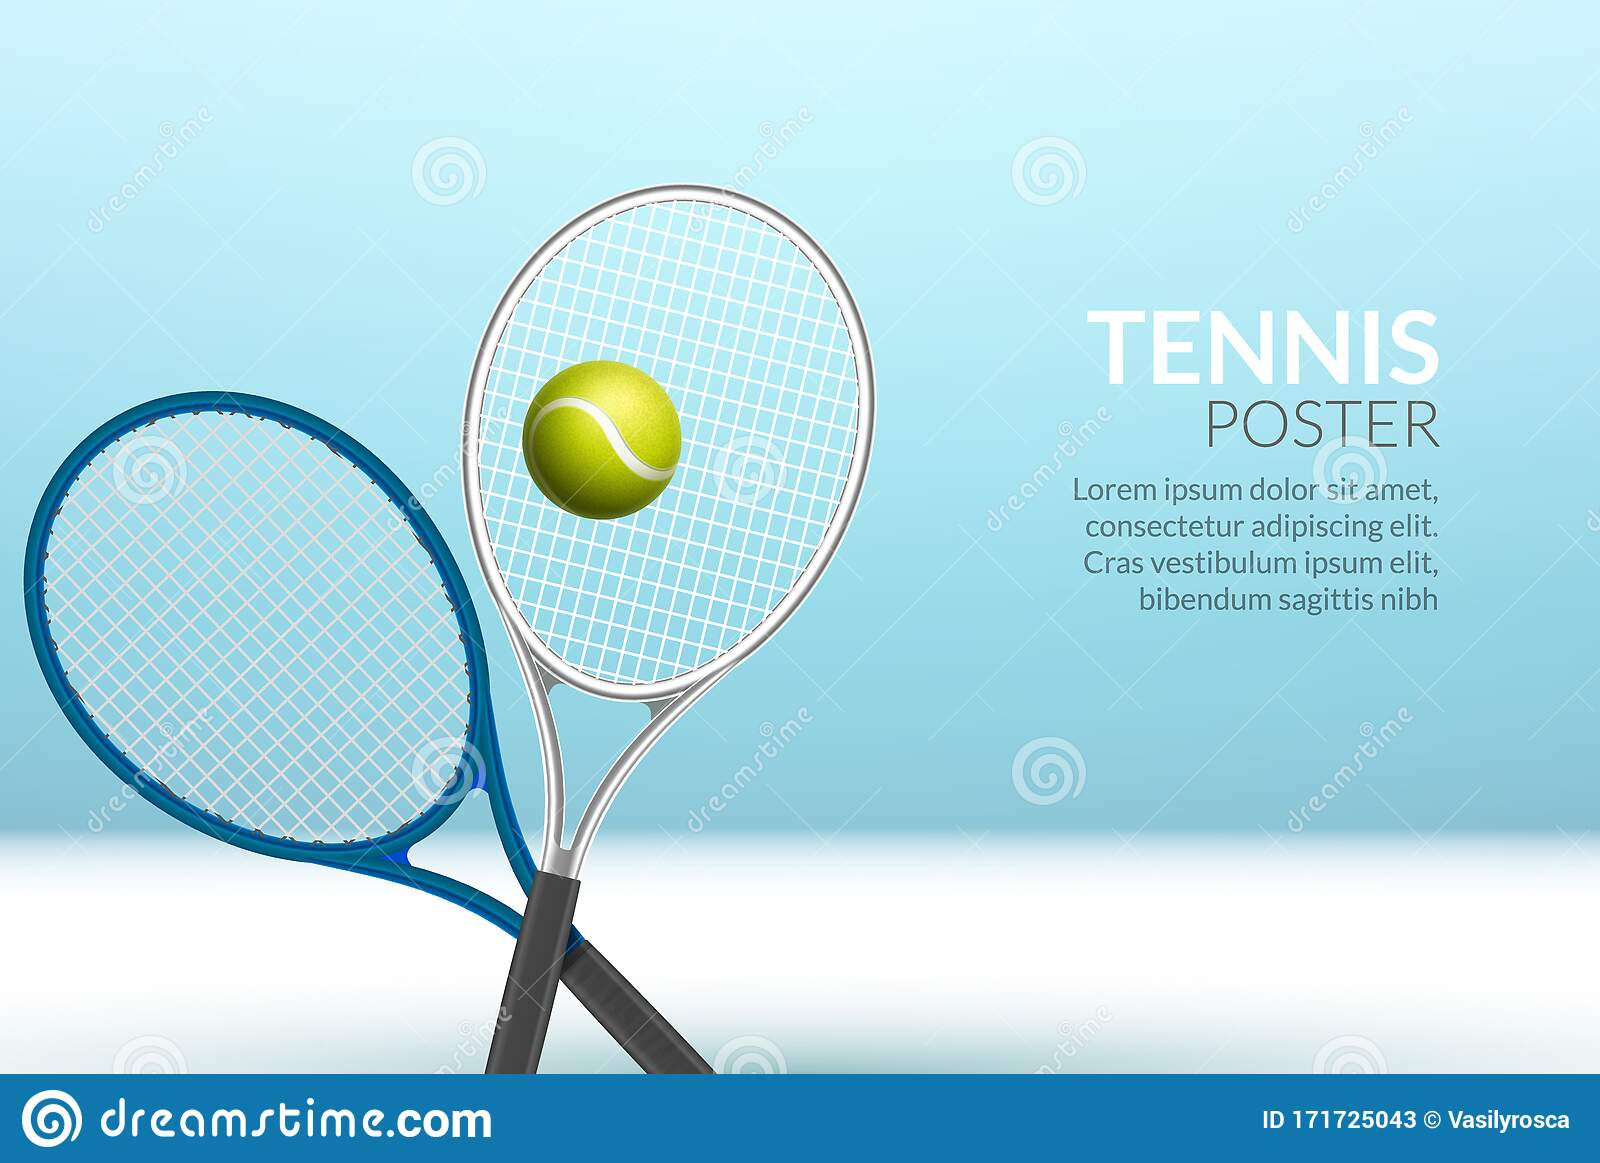 Tennis Banner Background Tennis Ball Racket Poster Sport Flyer Design Tournament Stock Vector Illustration Of Layout Abstract 171725043